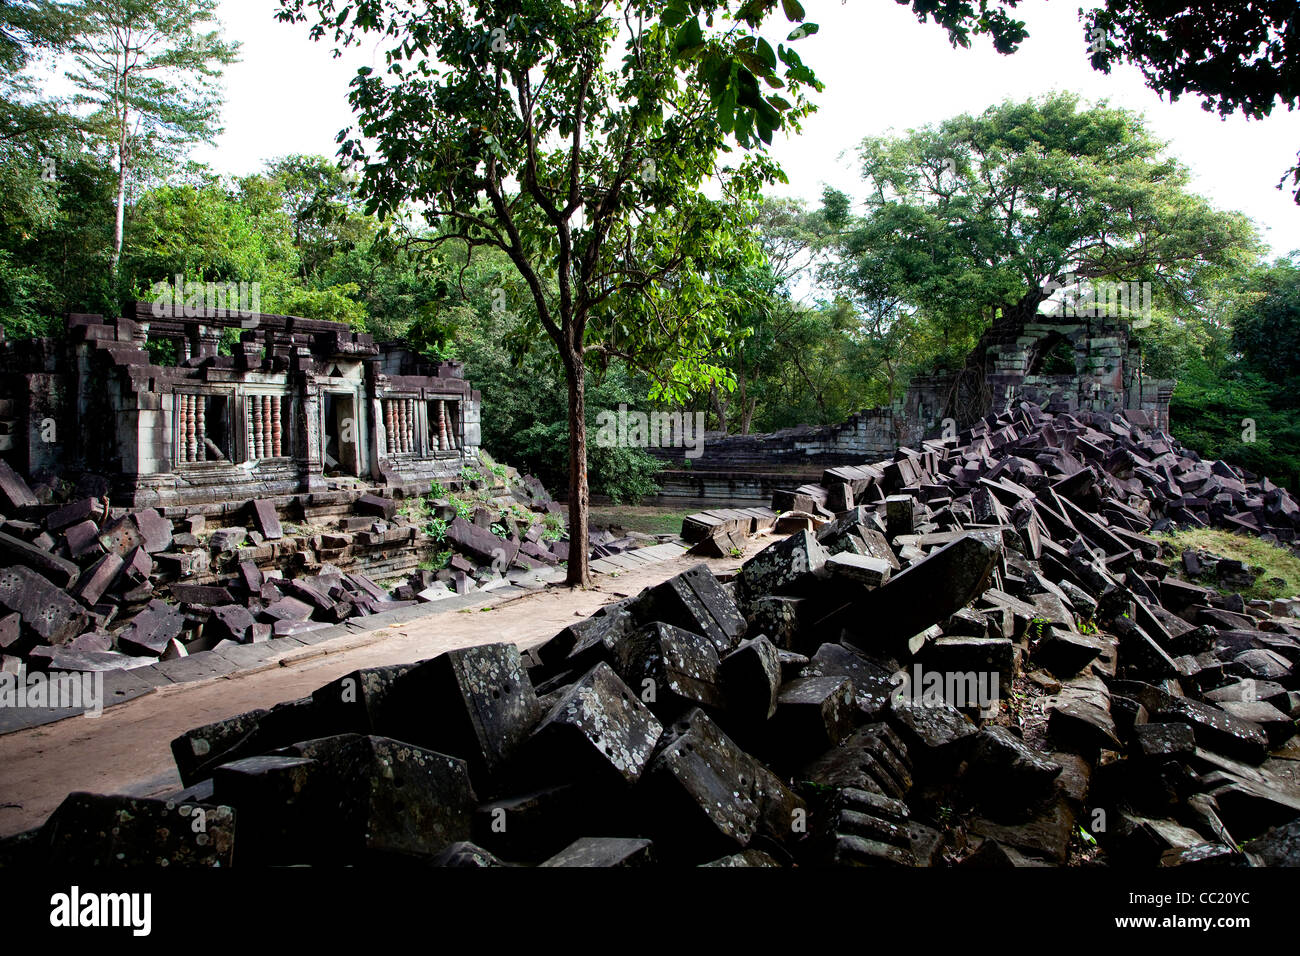 Beng Mealea, temple in the Angkor Wat style located east of the main group of temples at Angkor, Cambodia, Asia - Stock Image